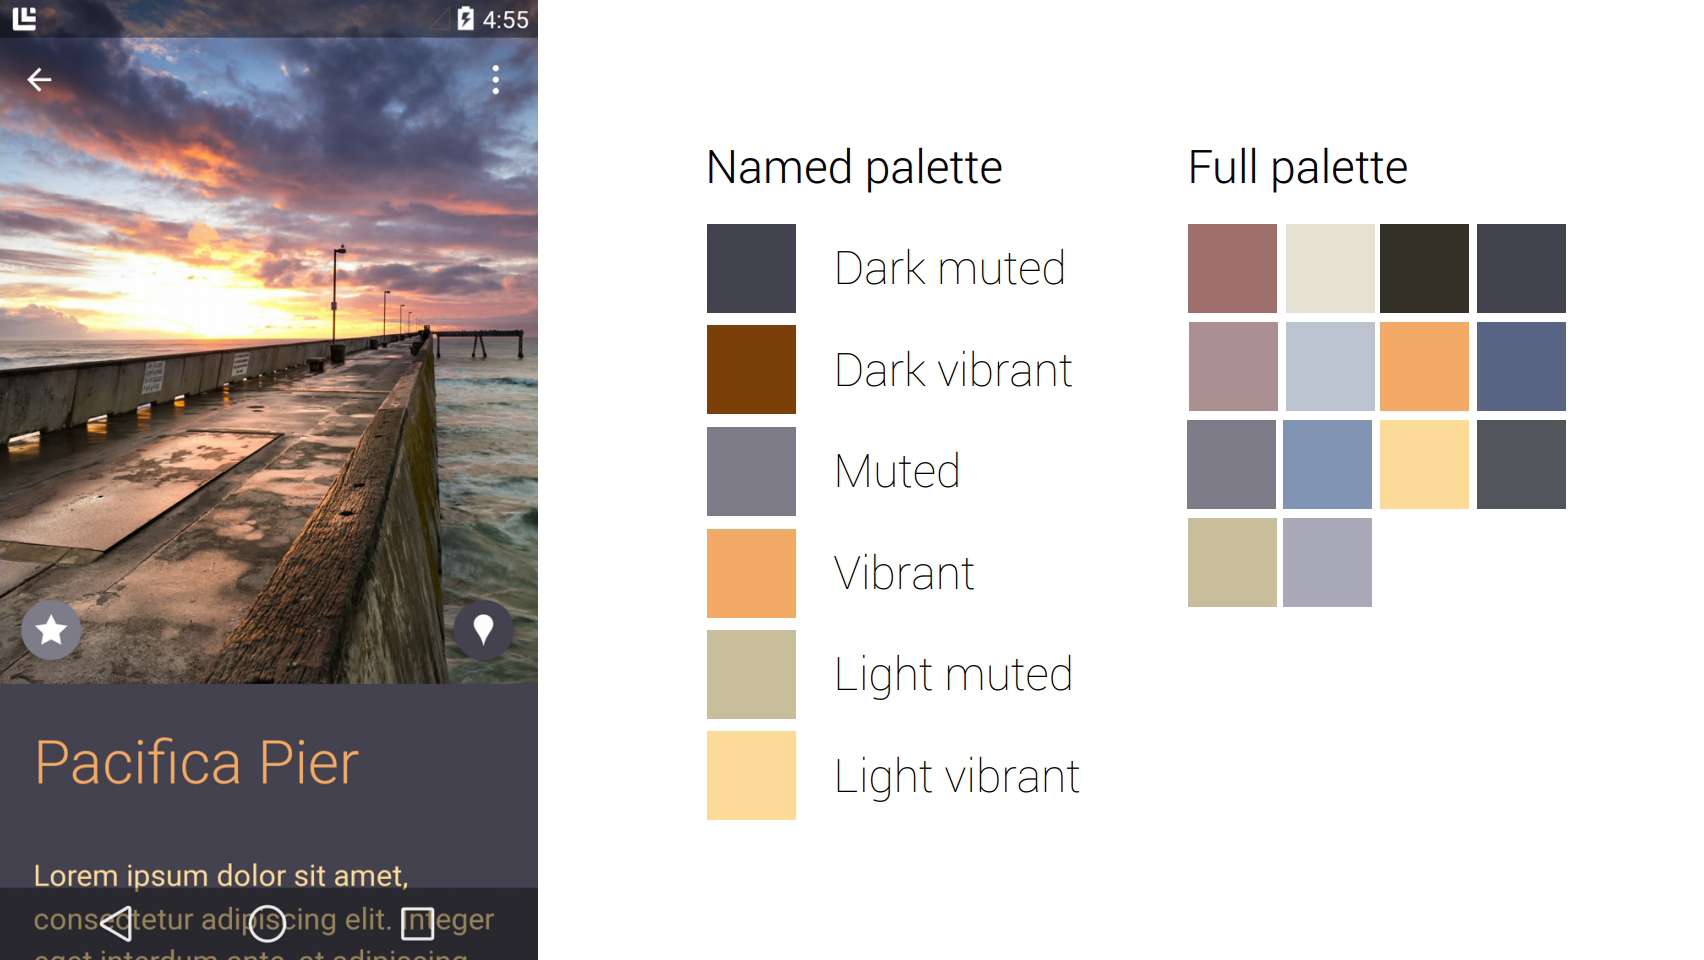 The new Palette API allows developers to automatically color-code an app with an image. All the colors on the right were automatically pulled from the picture of a pier on the left.